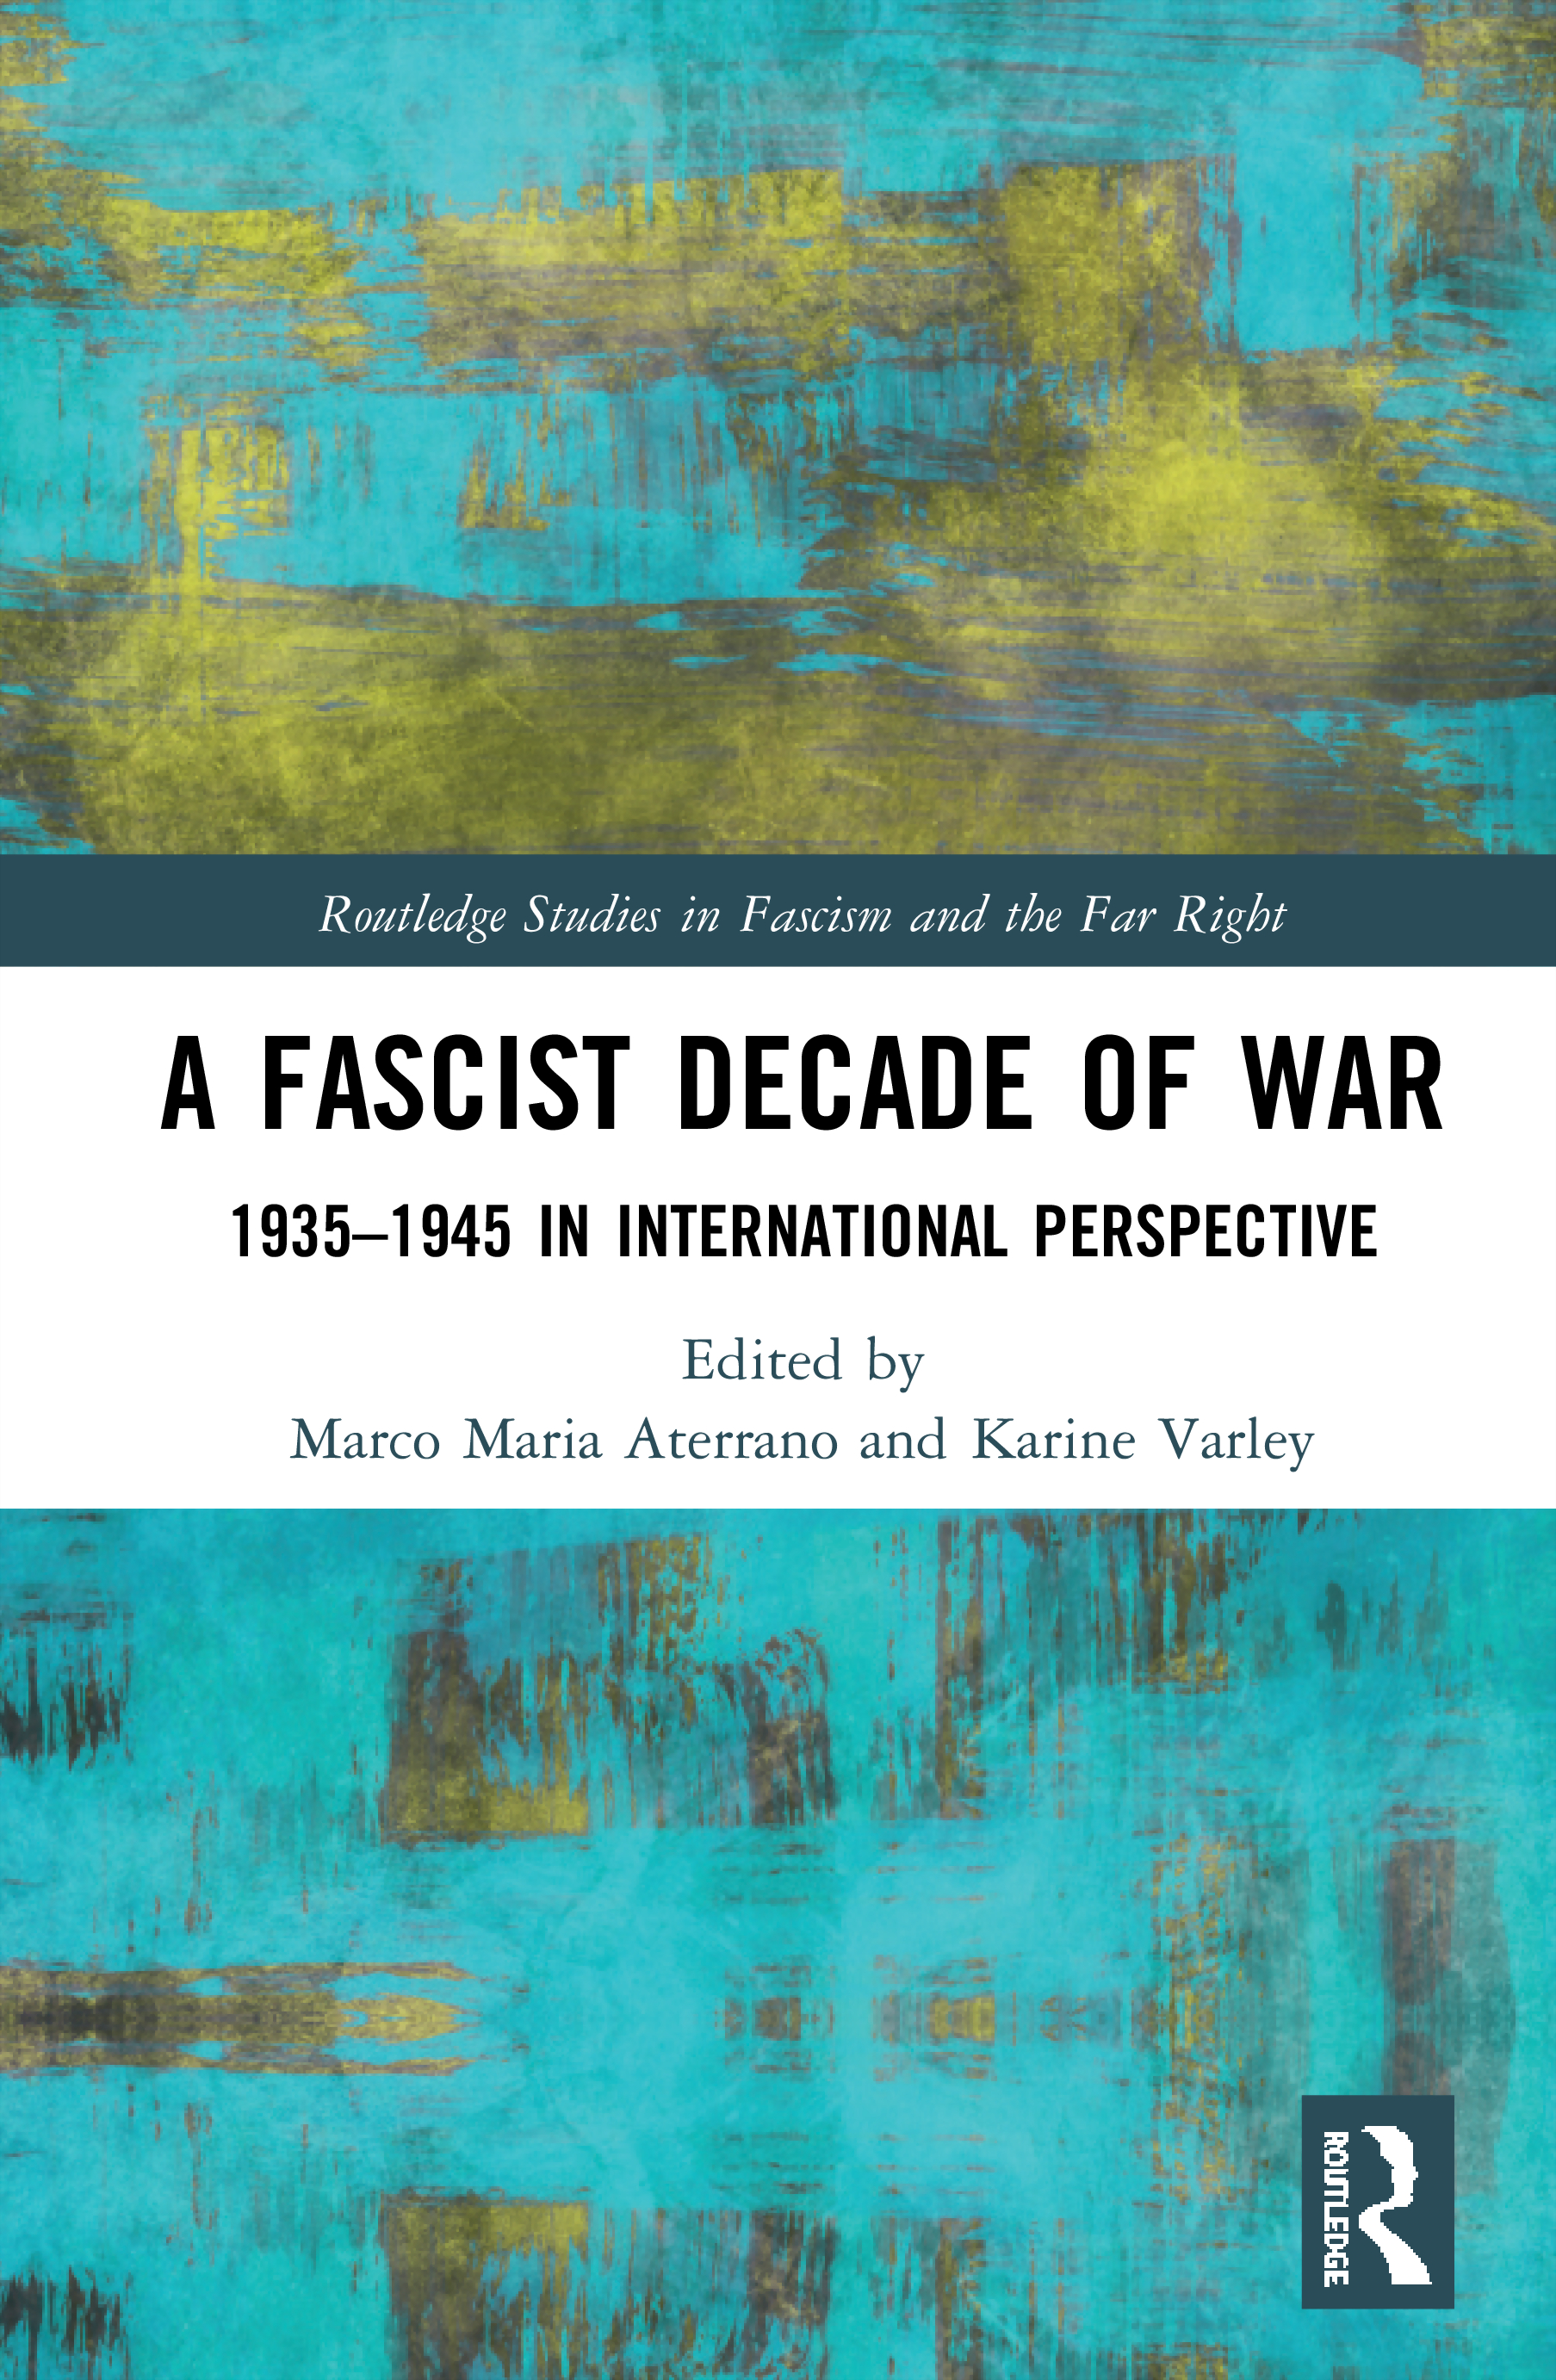 A Fascist Decade of War: 1935-1945 in International Perspective book cover